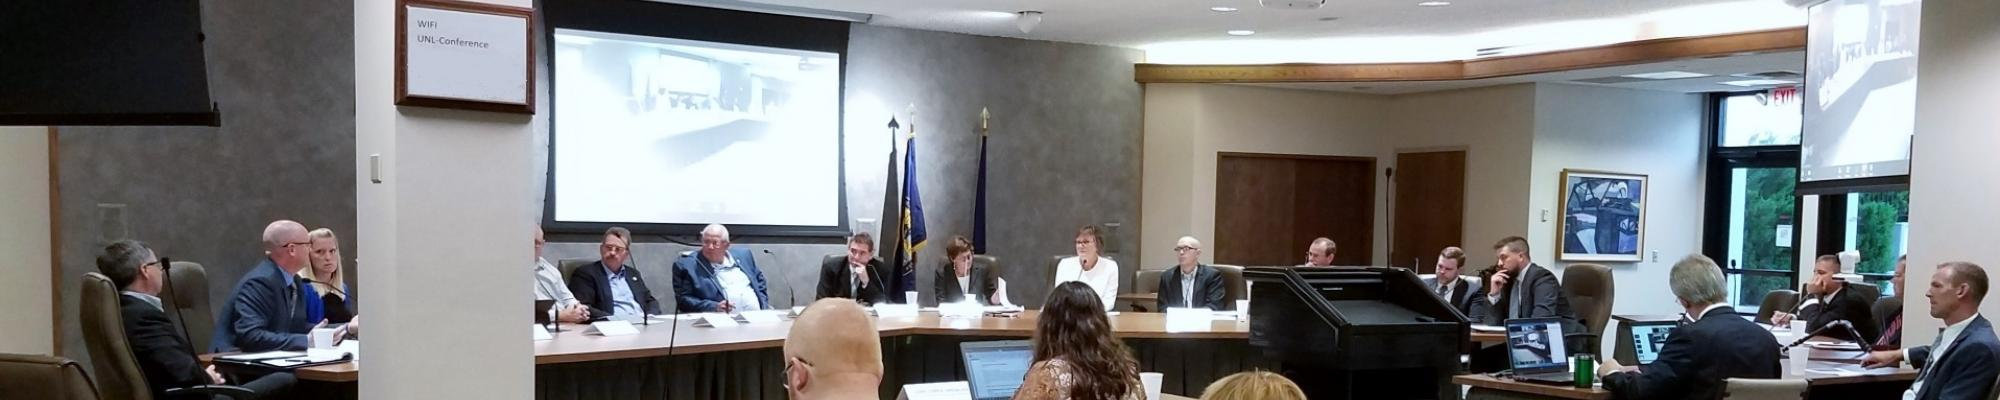 Rural Broadband Task Force